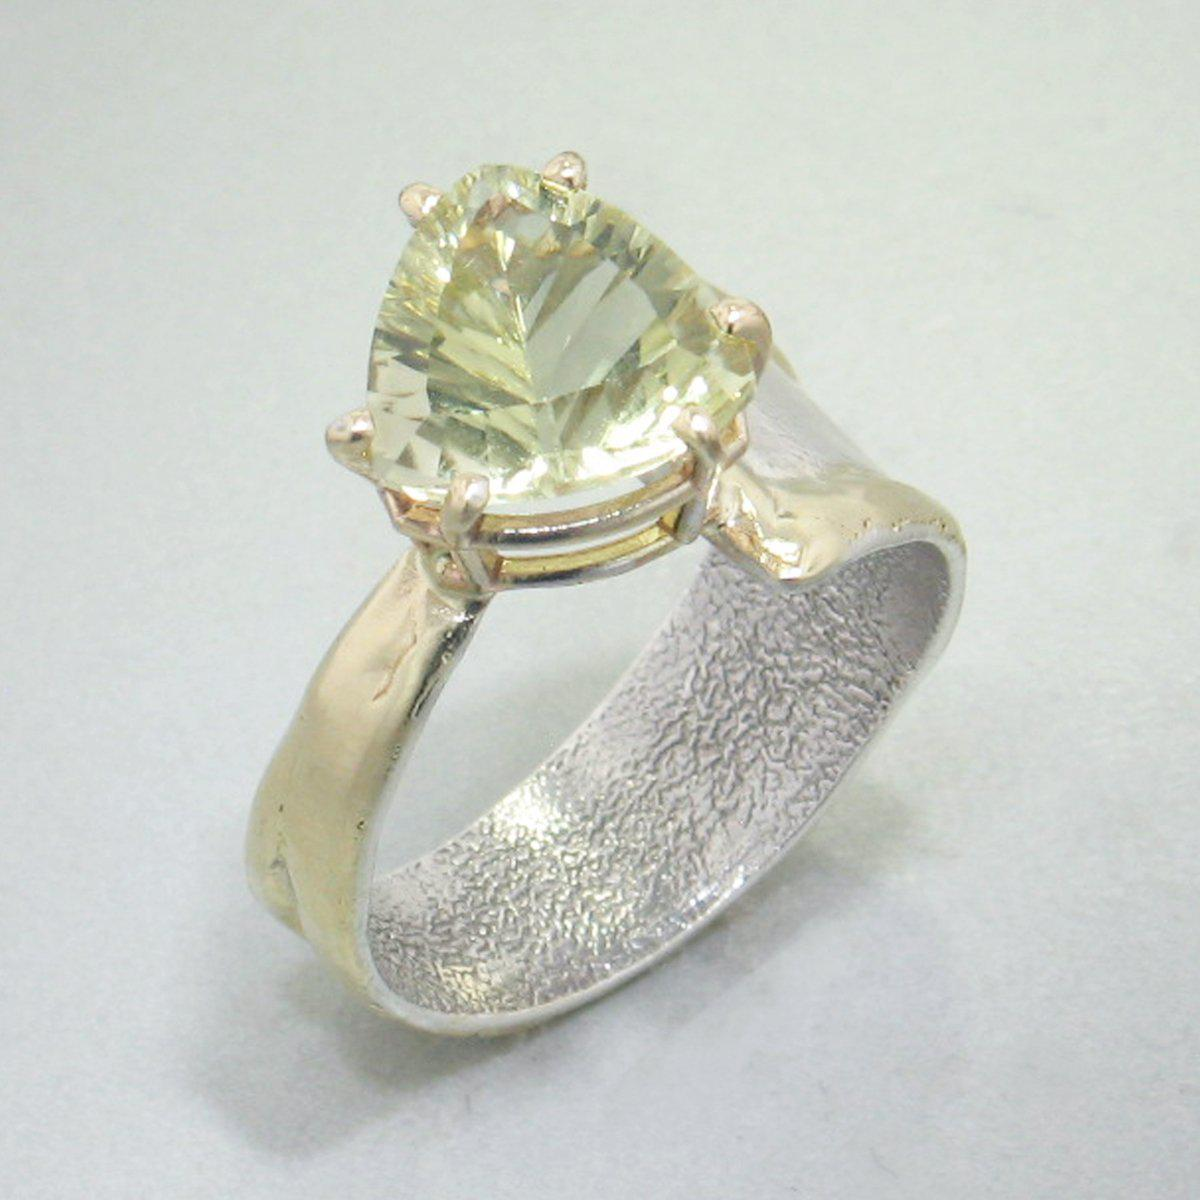 14K Gold & Crystalline Silver Margarita Quartz Ring - 29003-Fusion Designs-Renee Taylor Gallery